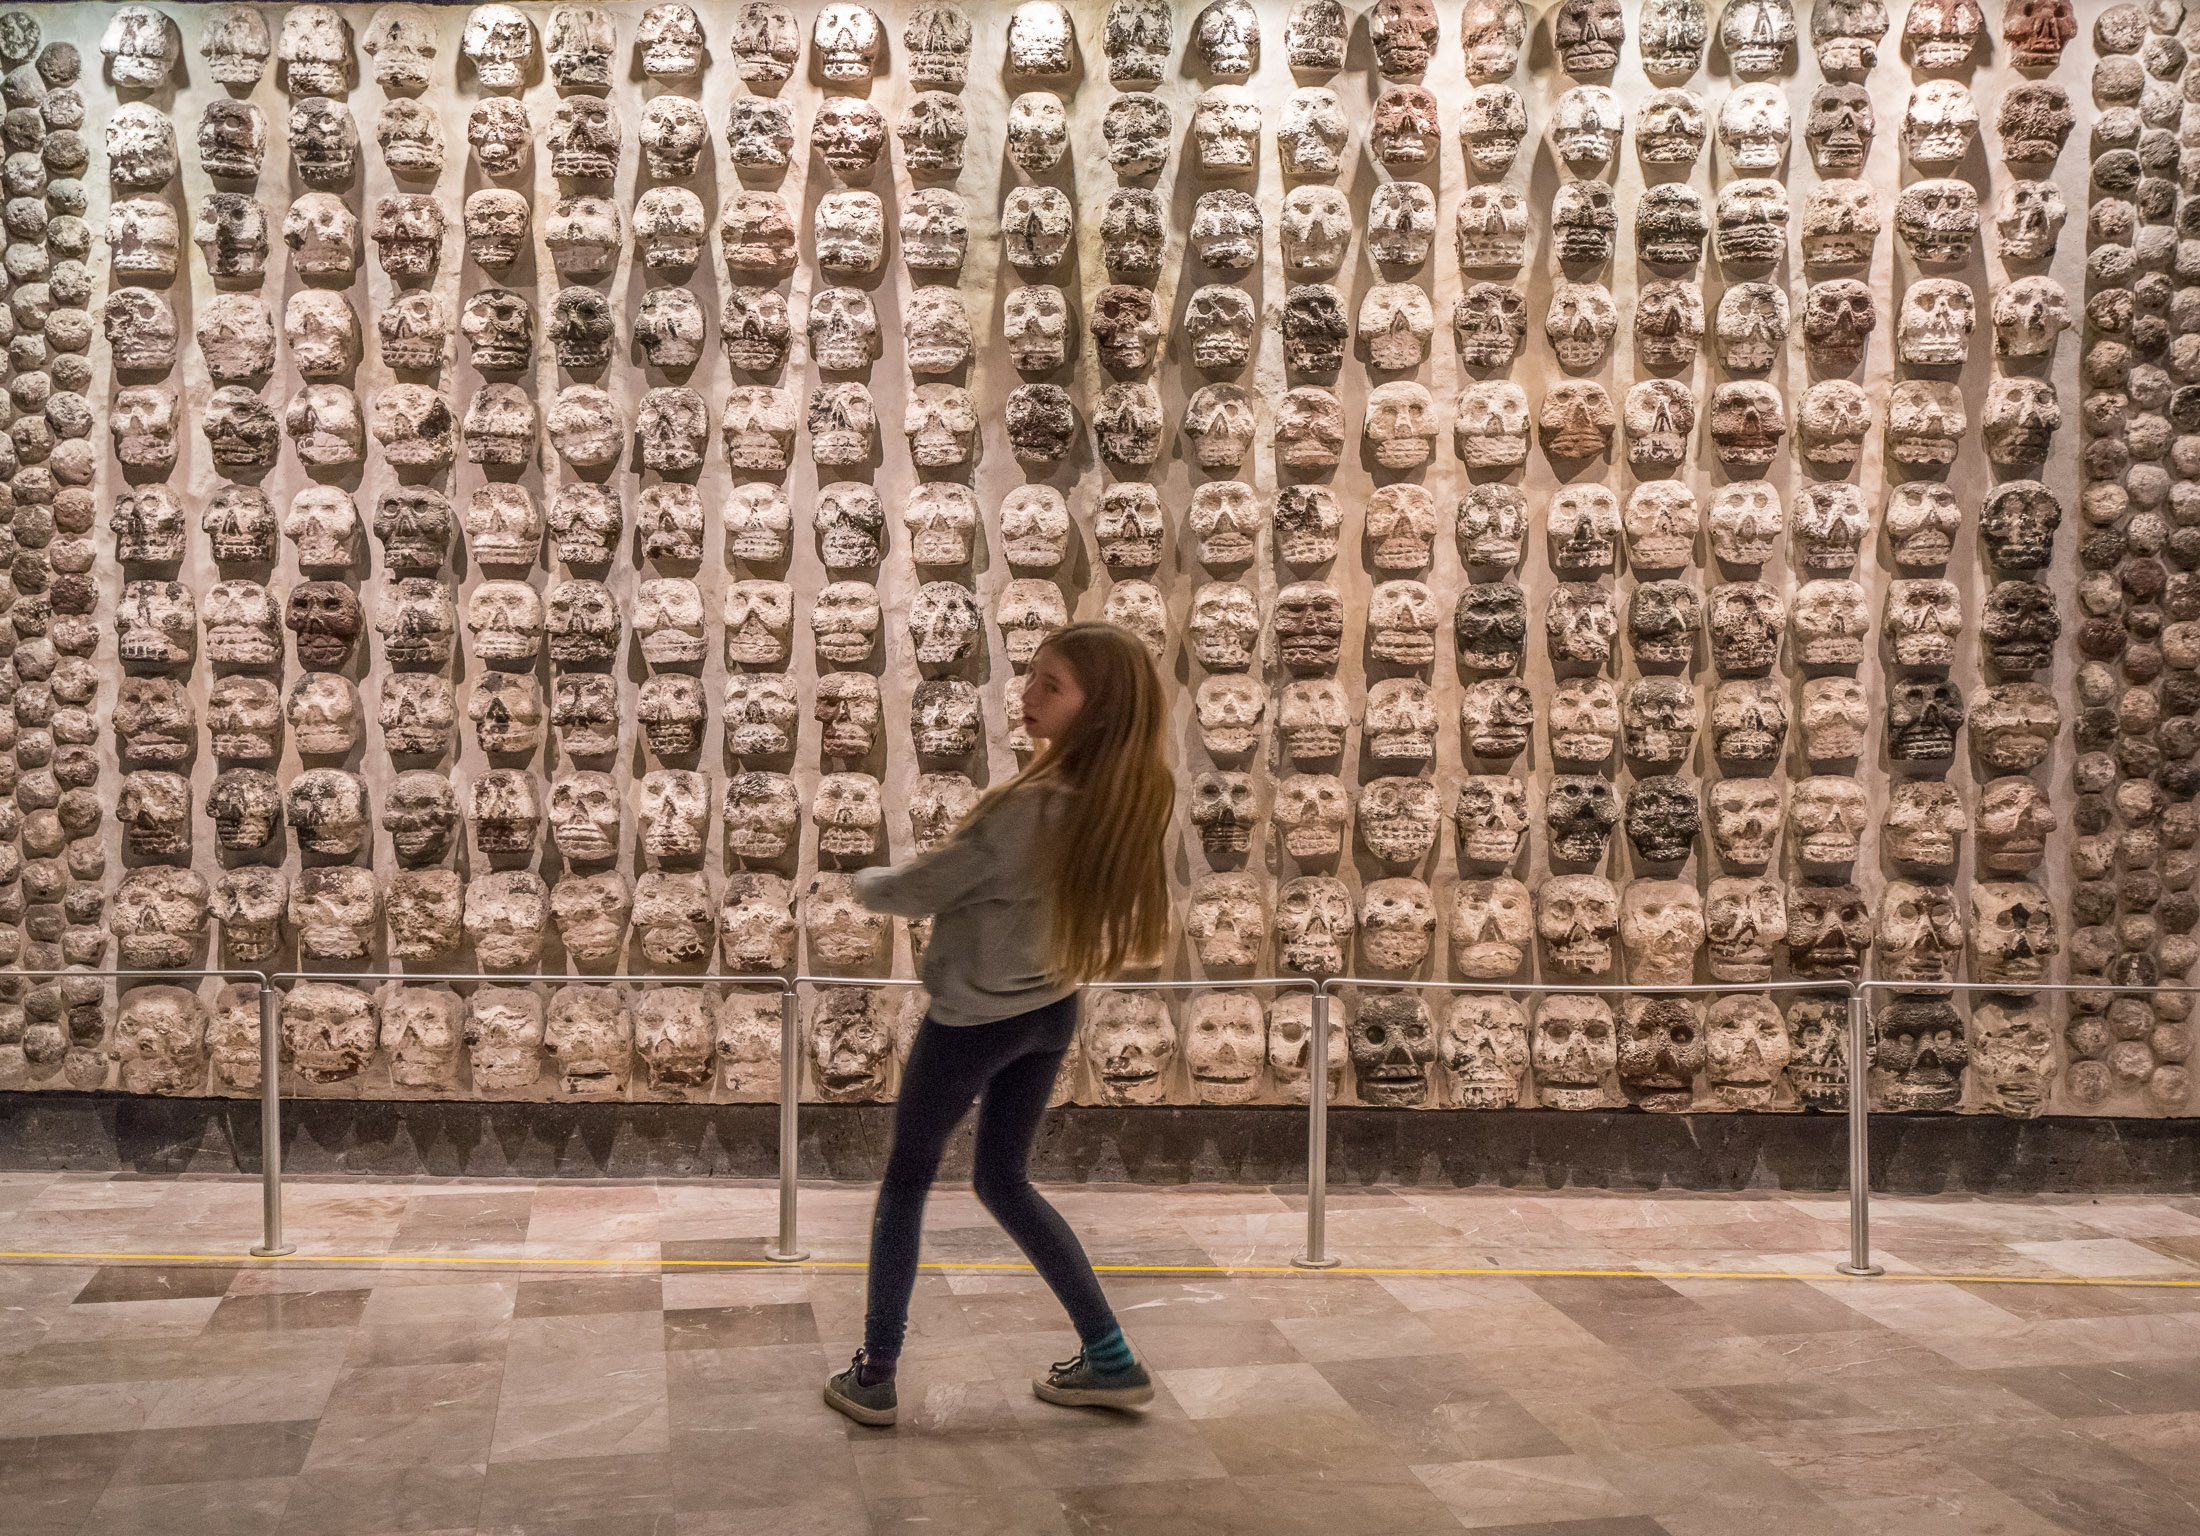 Wall of skulls at the Museo del Templo Mayor in Mexico City